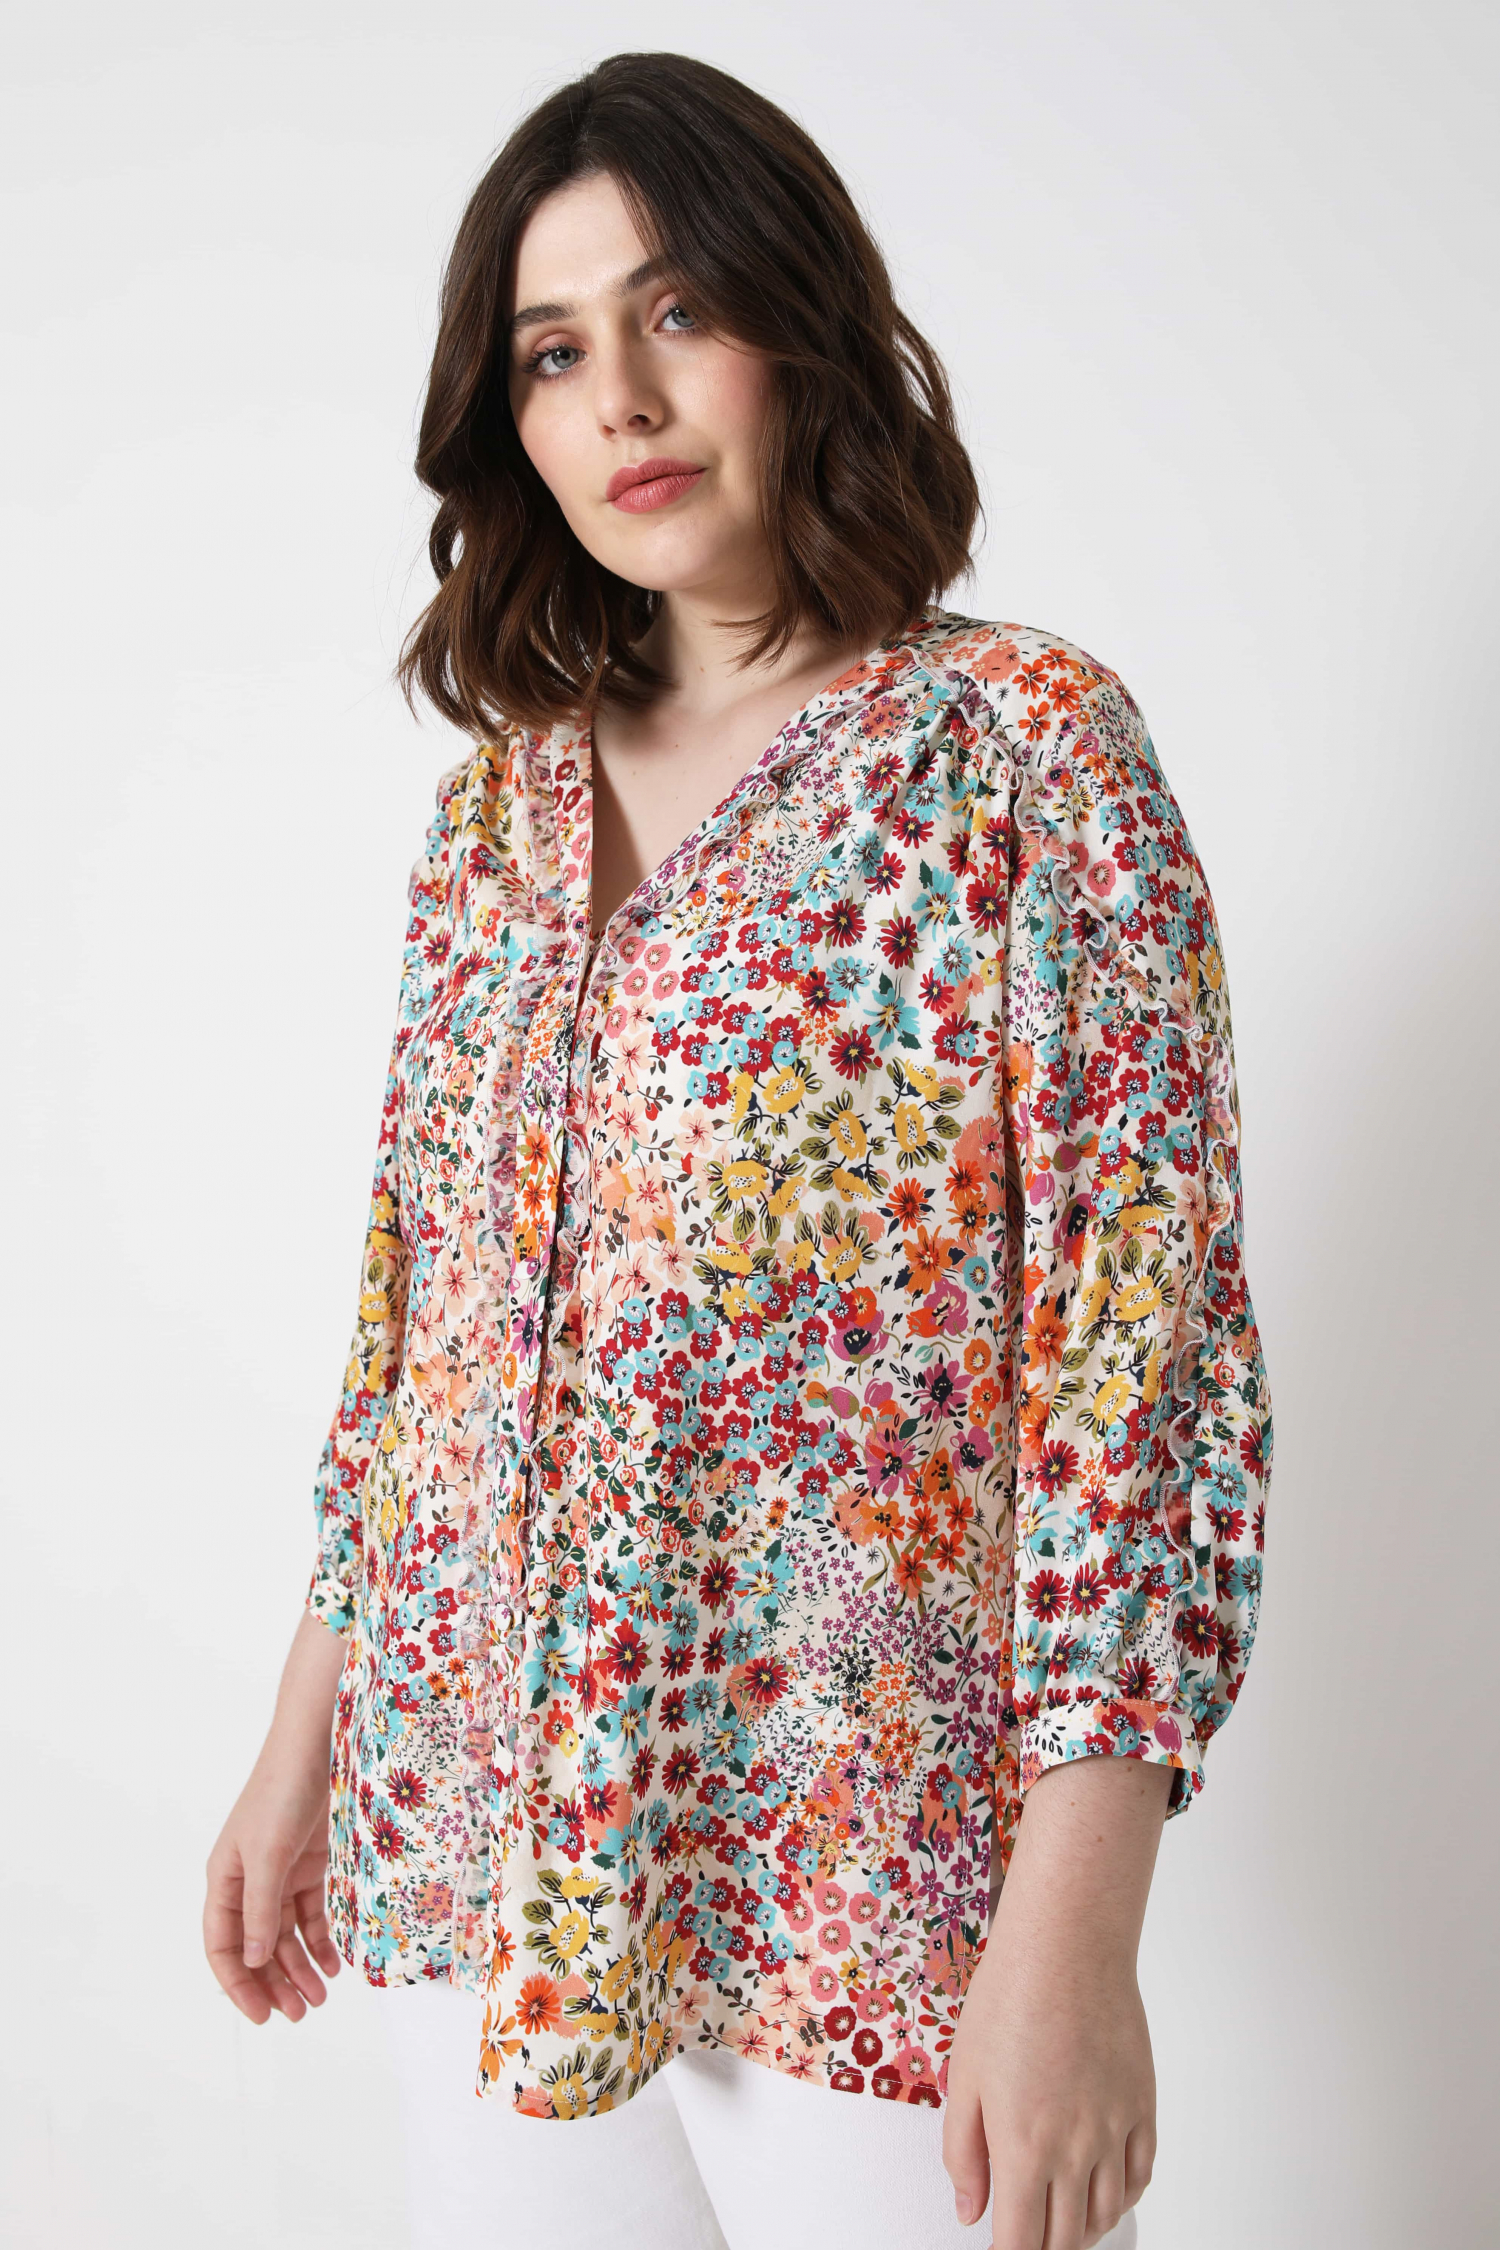 Floral printed viscose shirt (shipping 5/10 February)